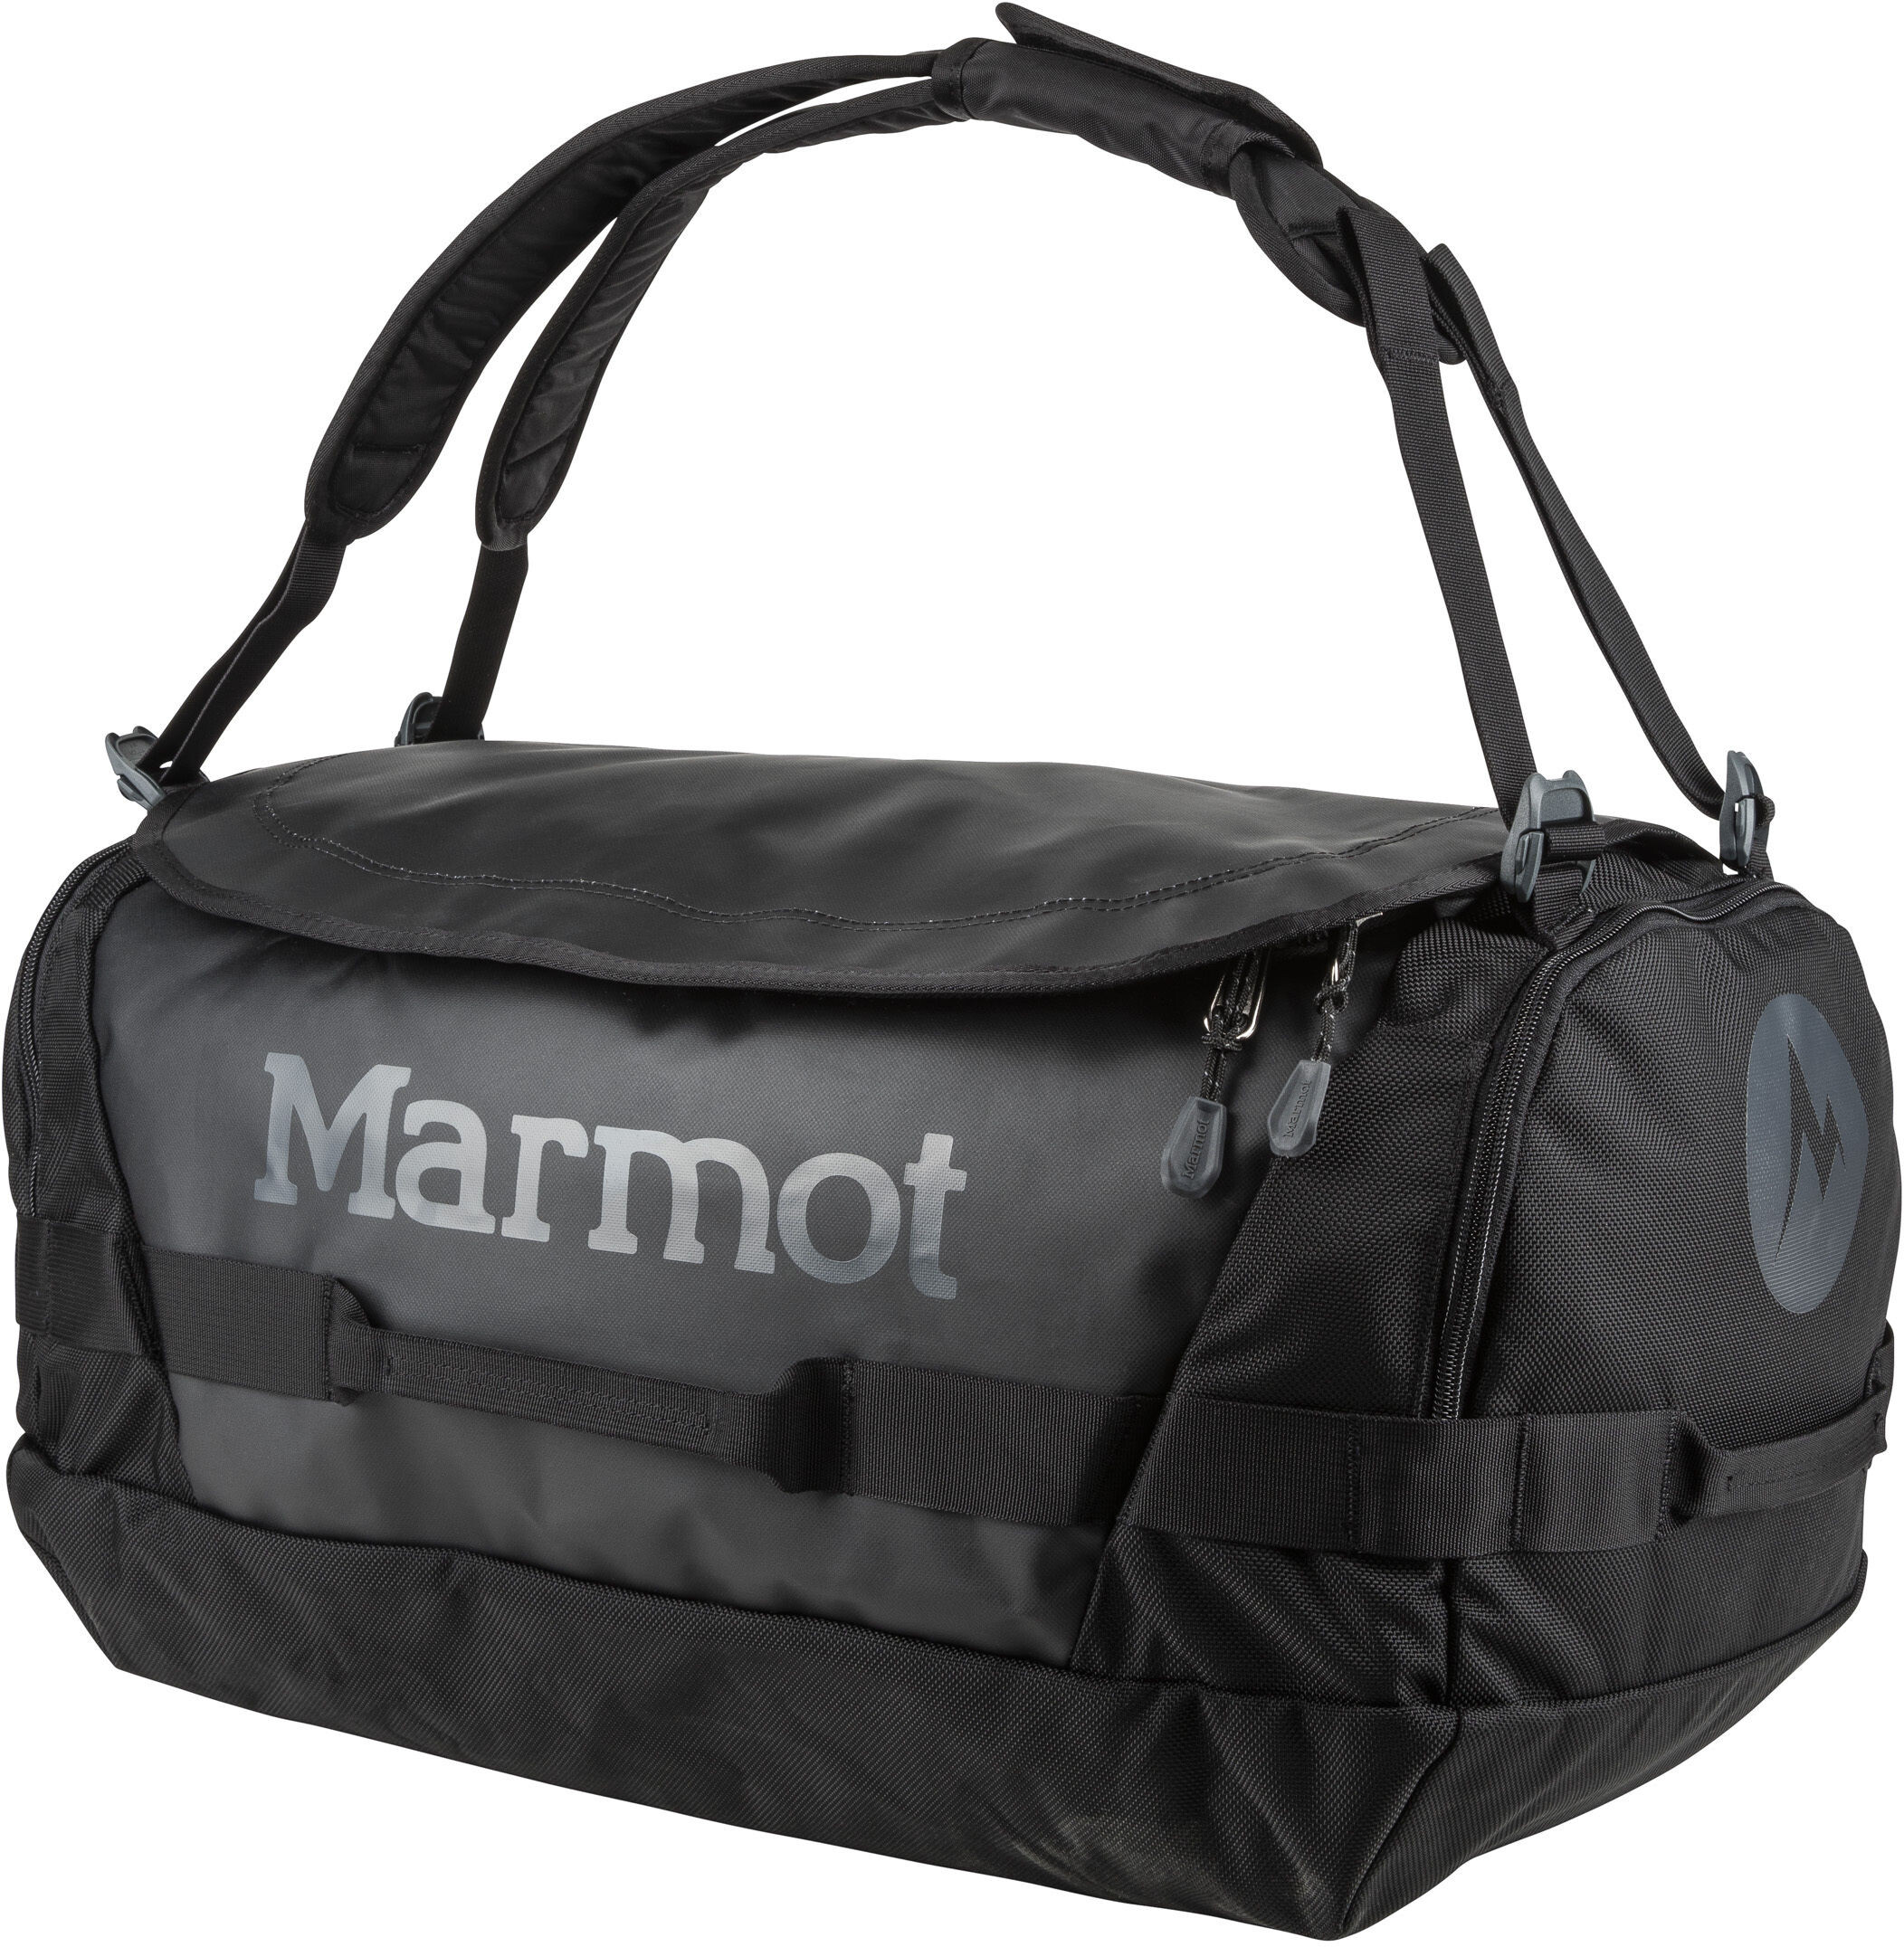 764cda2004f2 Marmot Long Hauler Duffel Travel Luggage Medium black at Addnature.co.uk